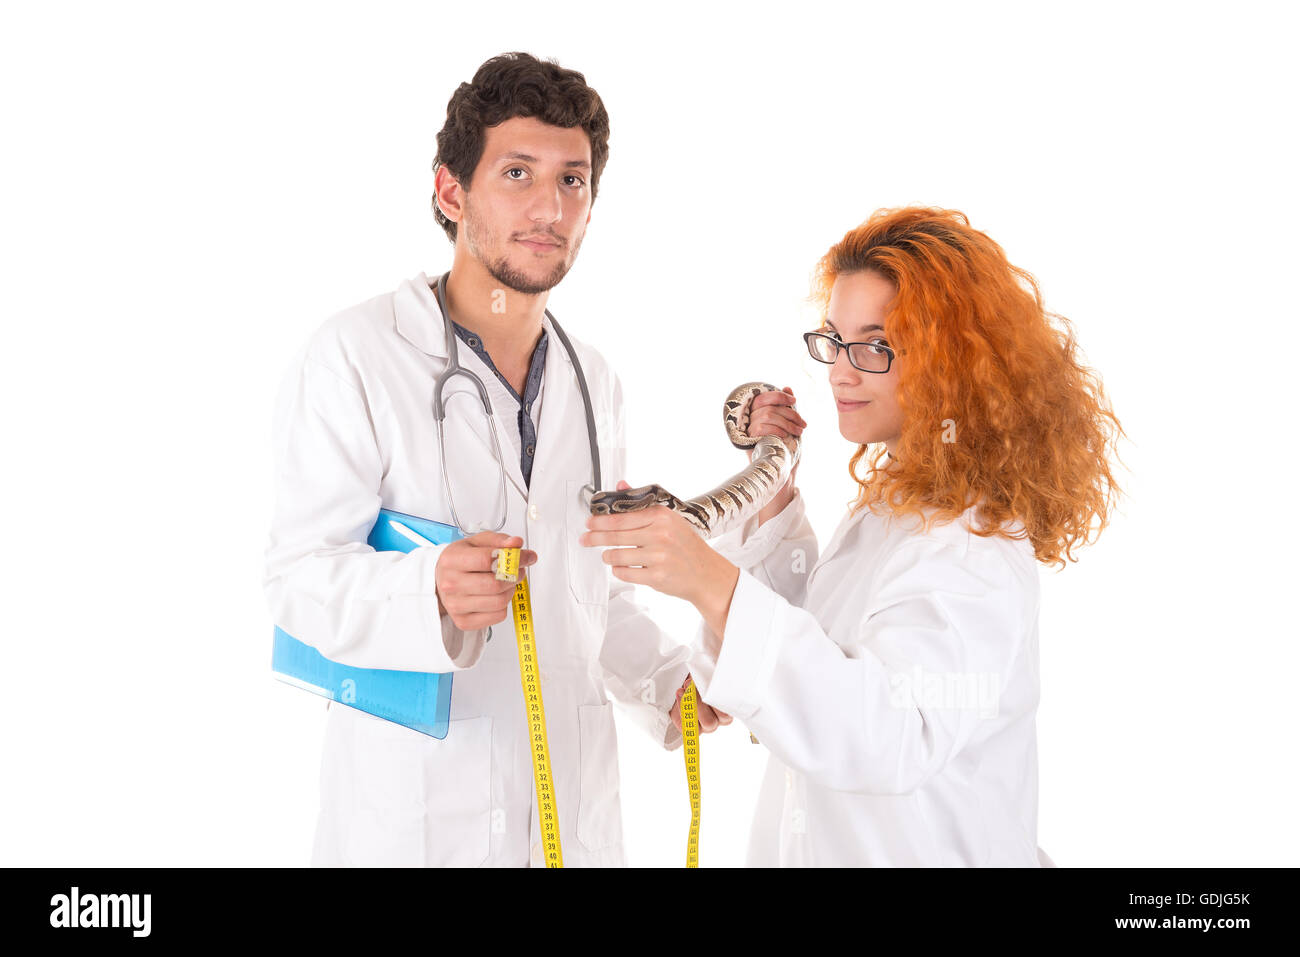 Veterinarian team measuring a snake isolated in white - Stock Image